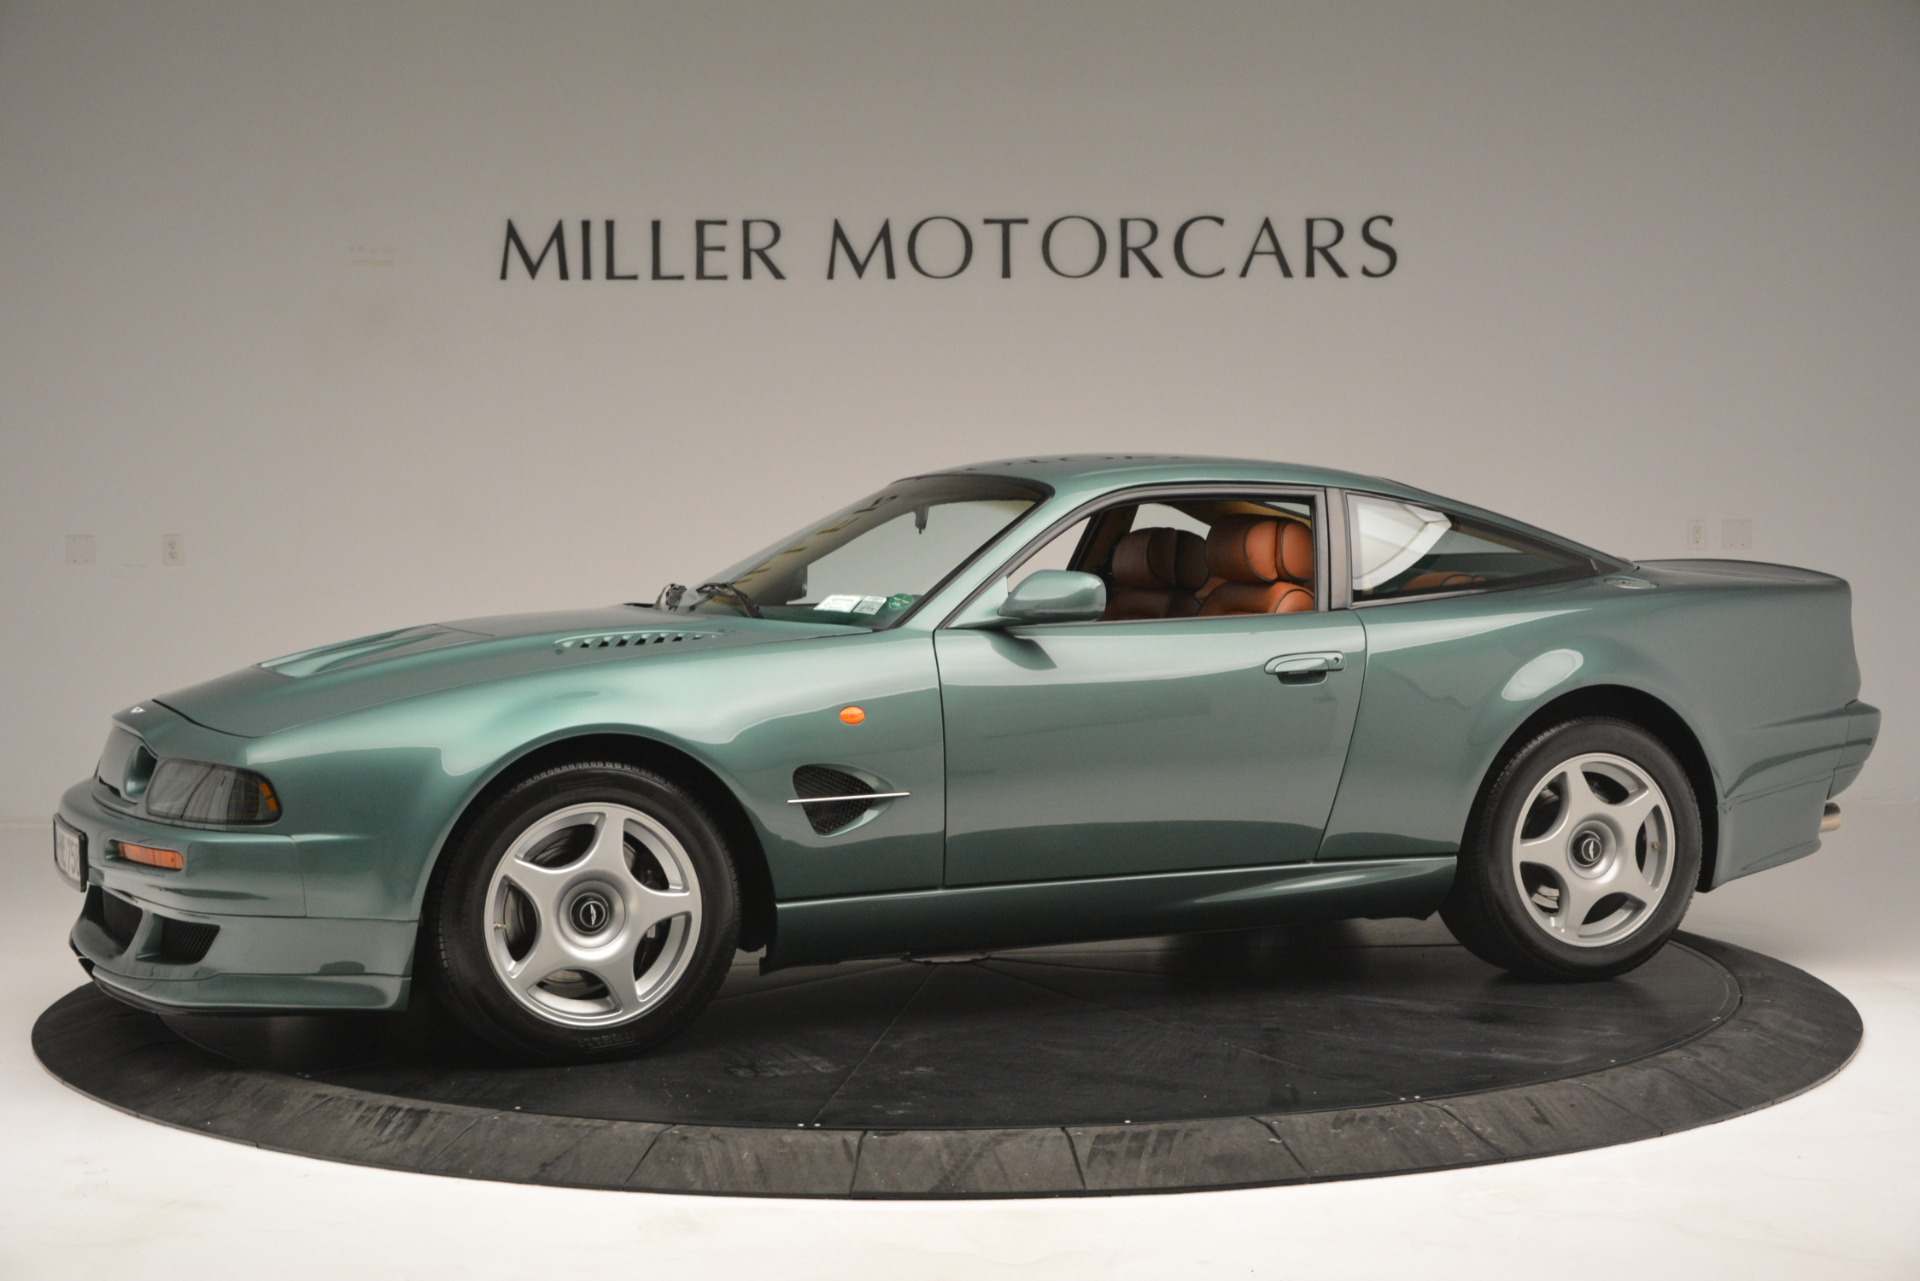 Used 1999 Aston Martin V8 Vantage Le Mans V600 Coupe For Sale In Westport, CT 2789_p3